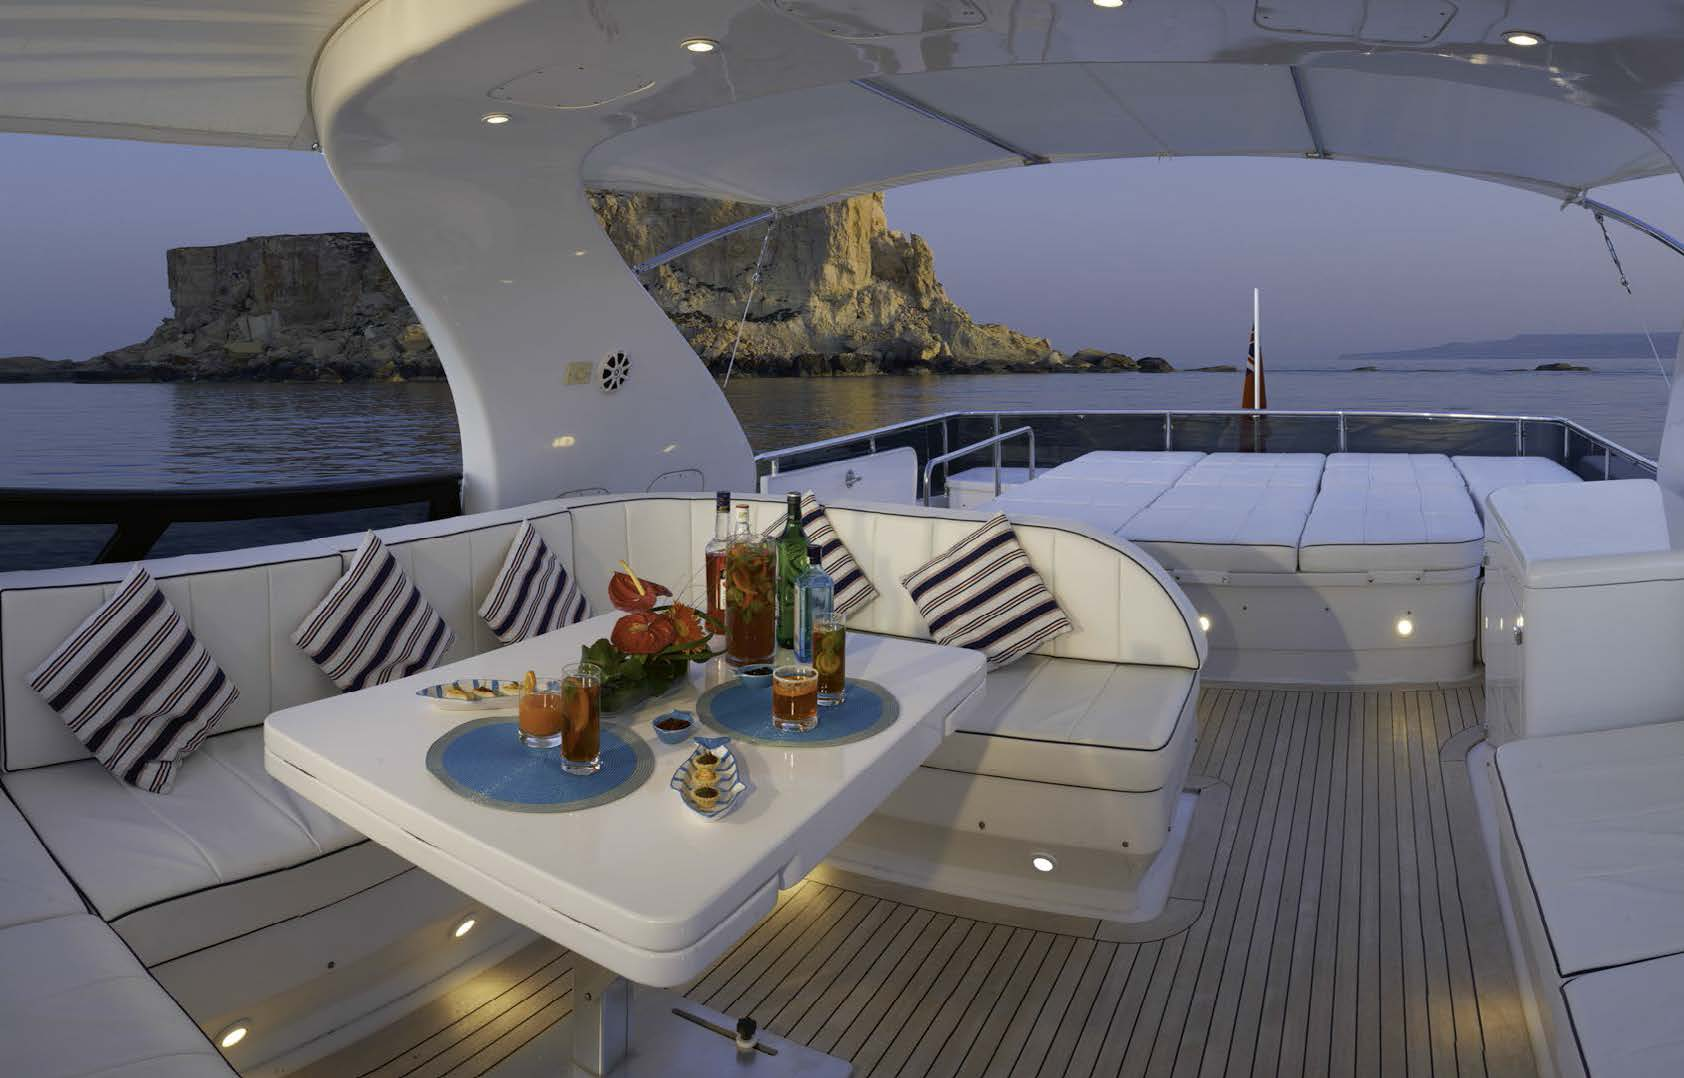 M/Y MEME yacht for charter lounge area on deck